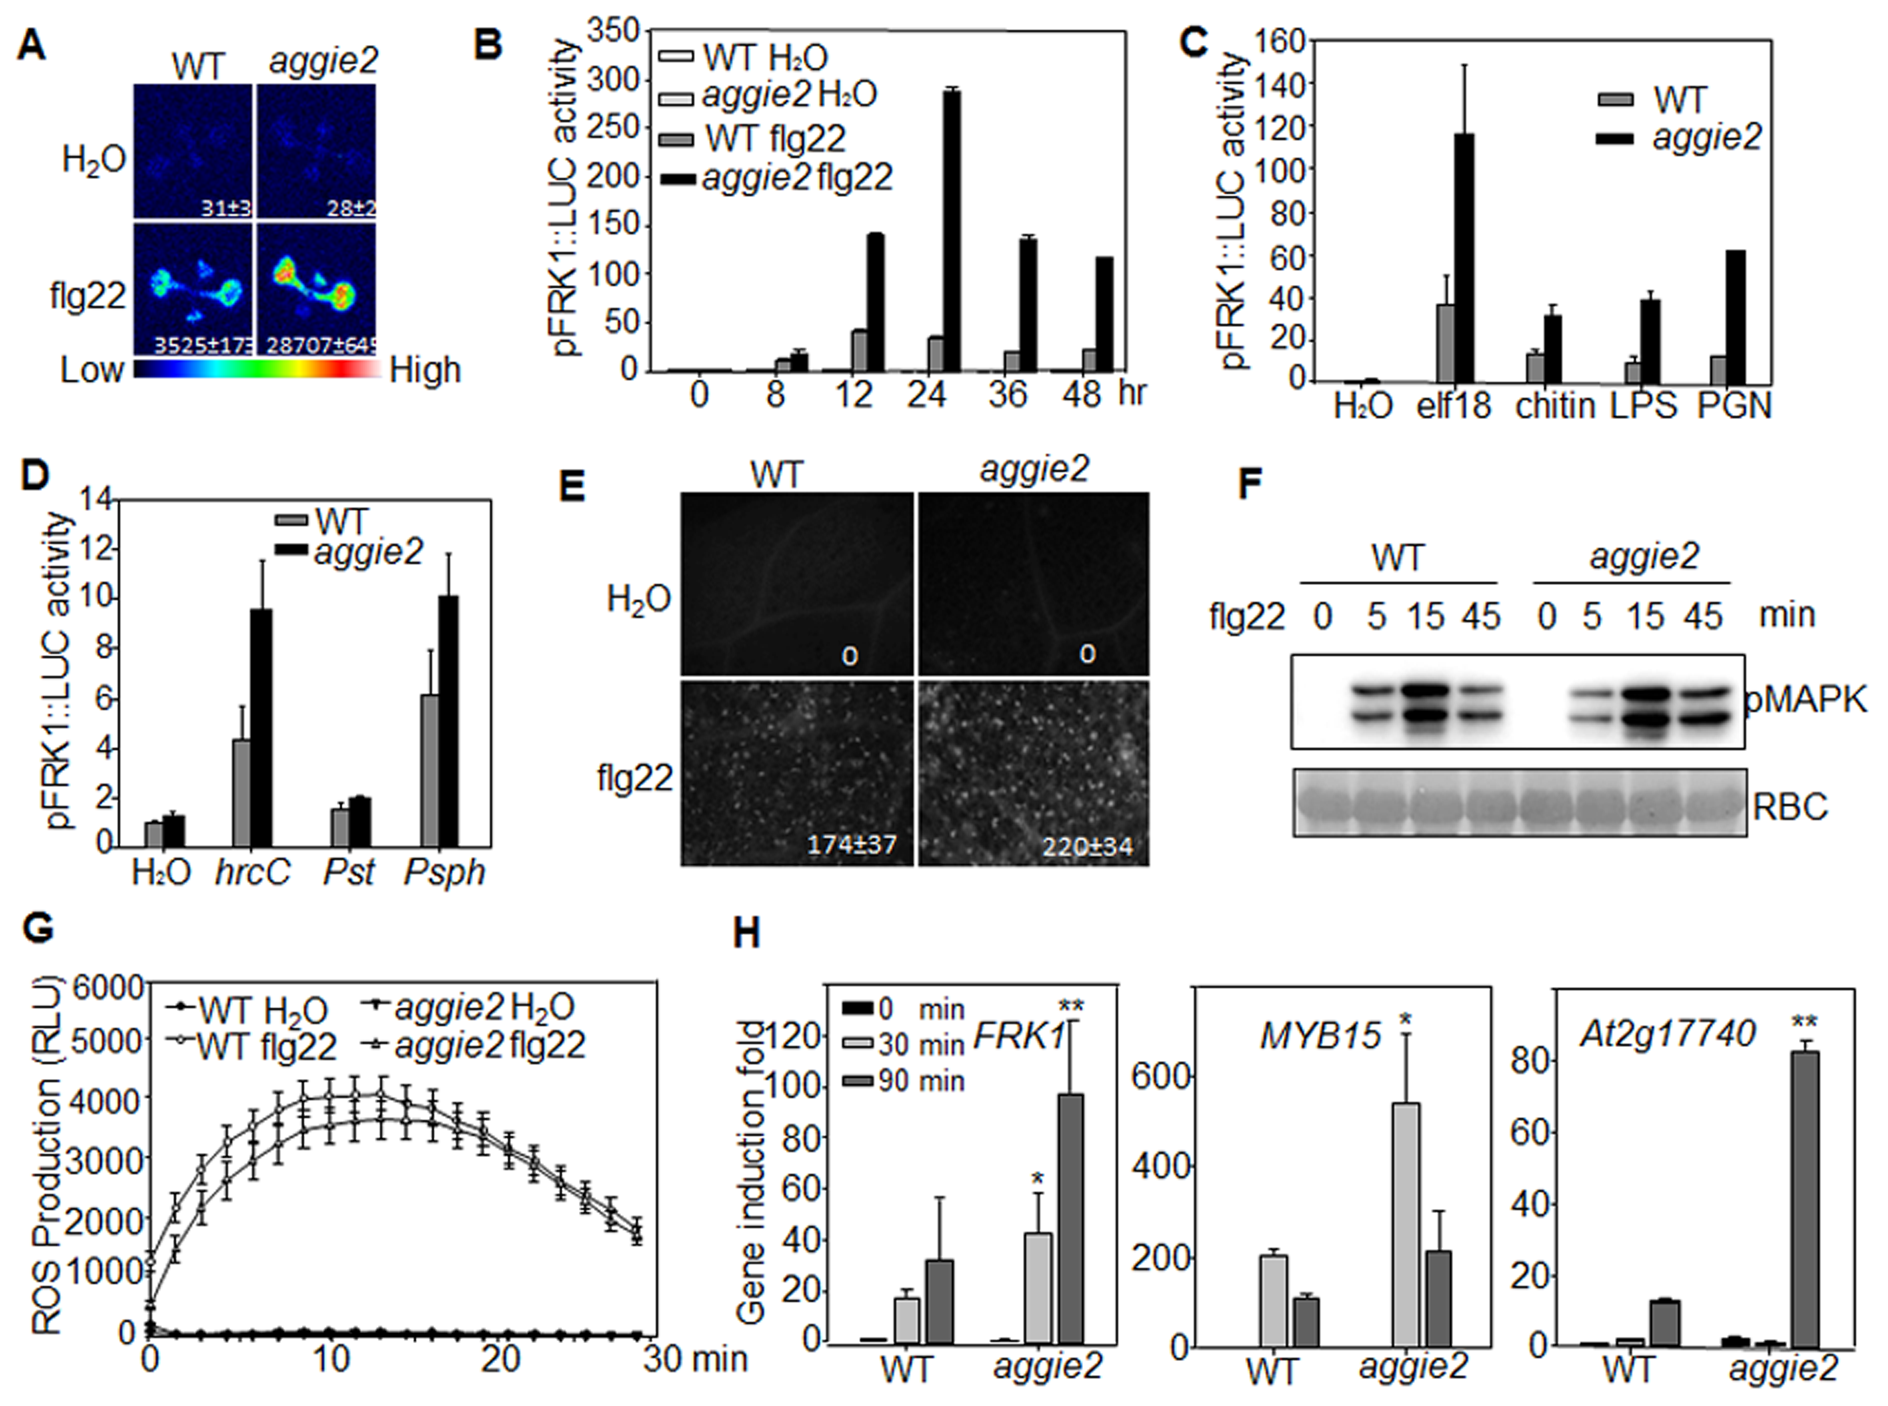 Elevated <i>pFRK1::LUC</i> expression and MAMP-triggered immune response in <i>aggie2</i> mutant.